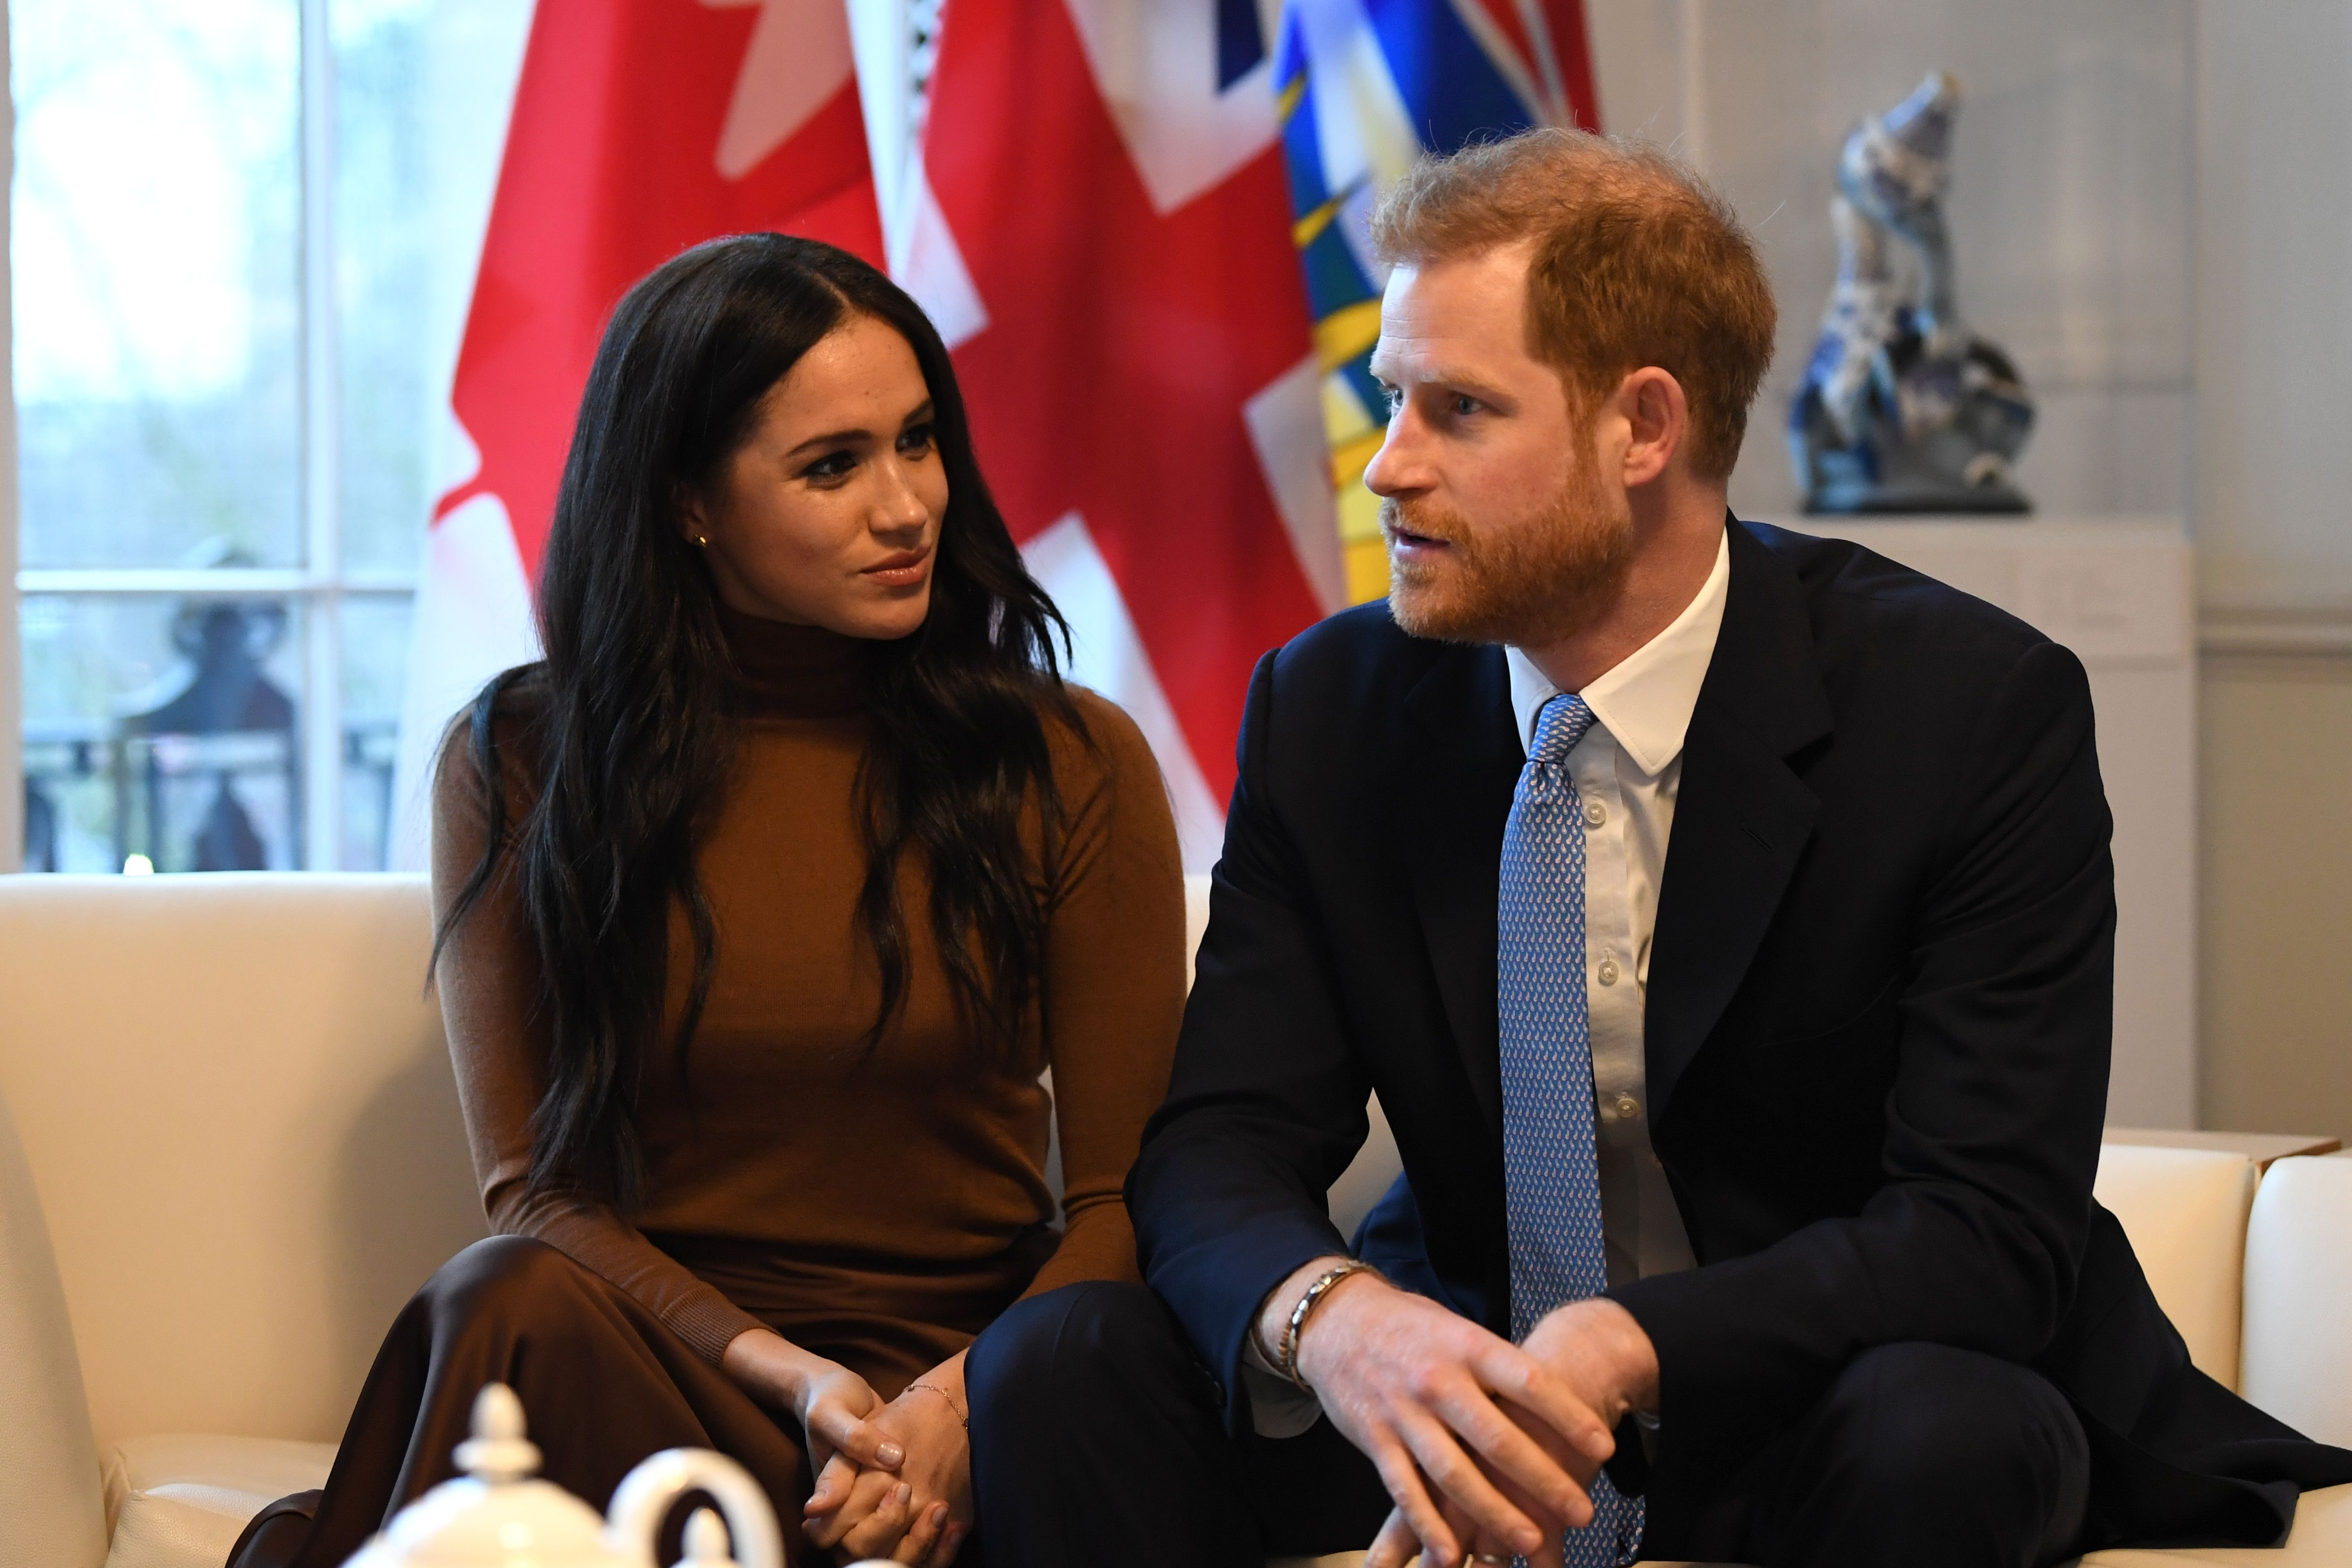 Prince Harry and Meghan during their visit to Canada House on January 7, 2020 | Photo: Getty Images